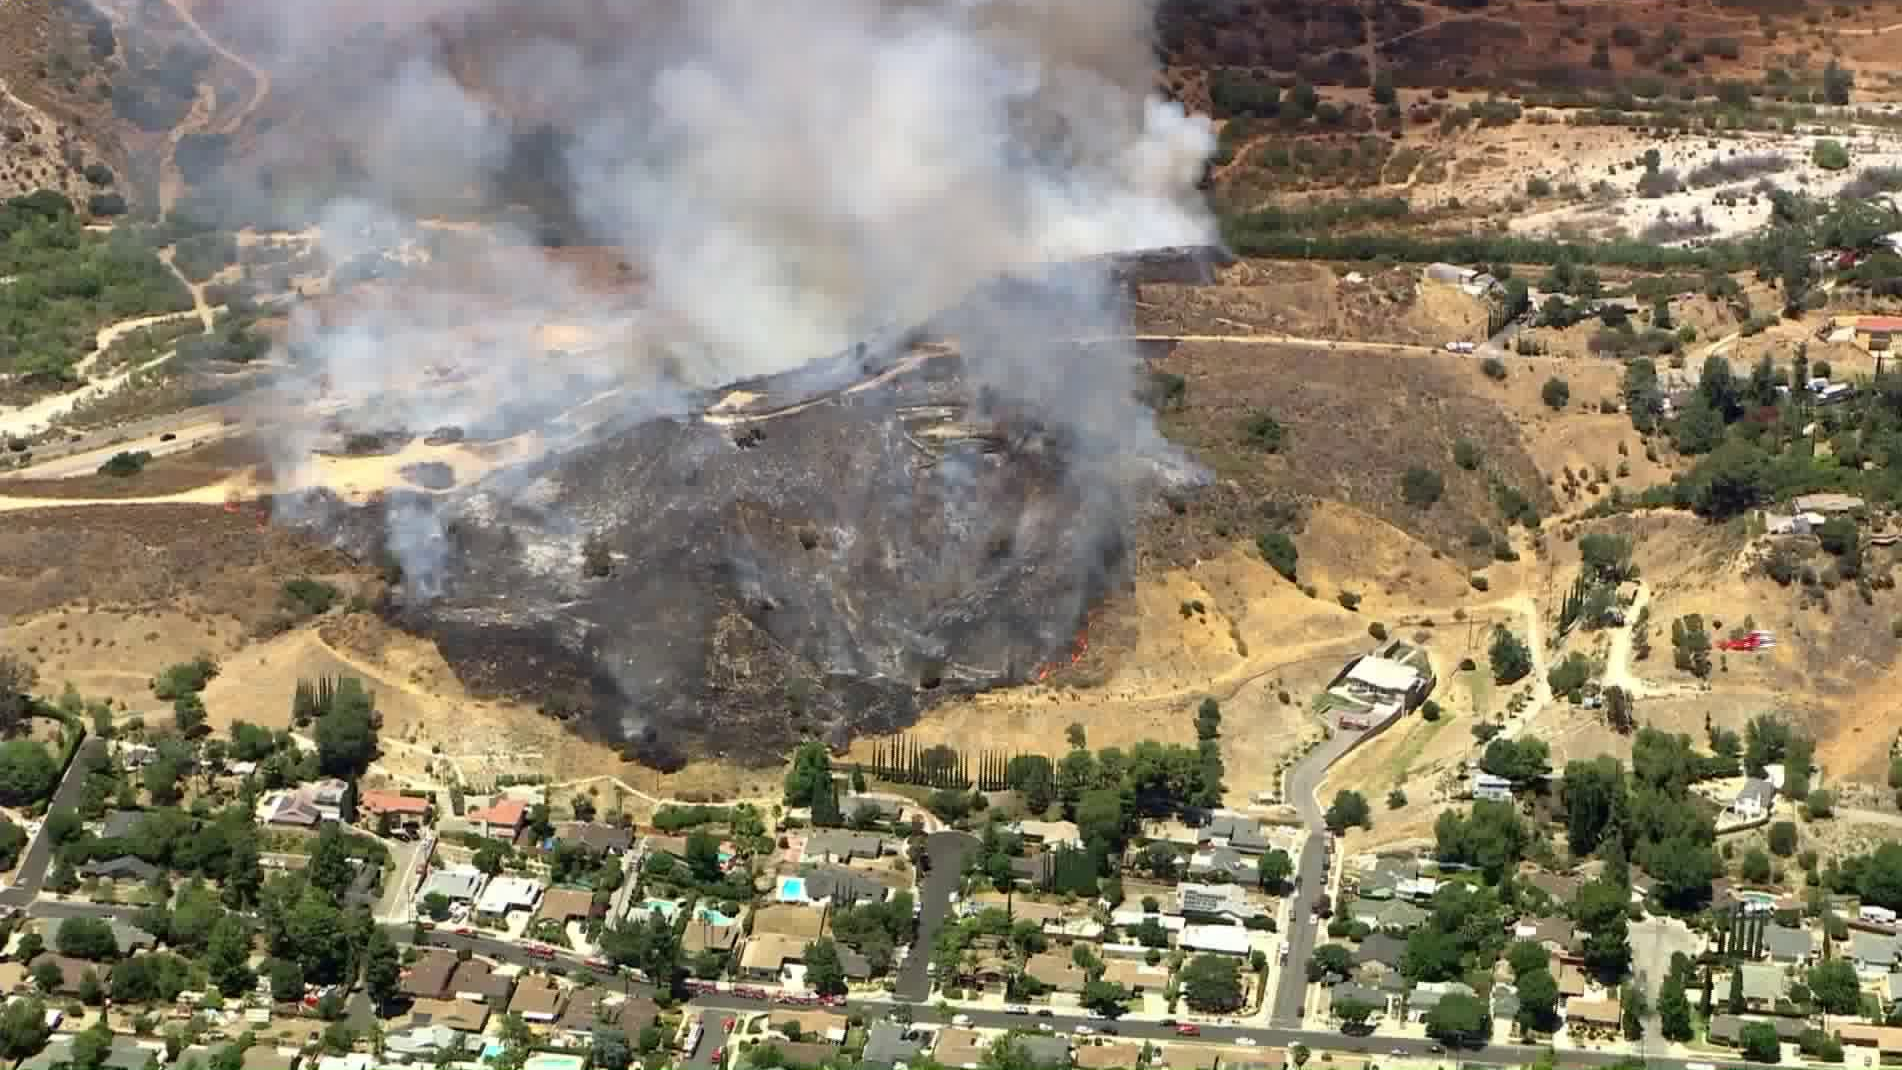 A brush fire burns in Sunland on July 31, 2020. (KTLA)